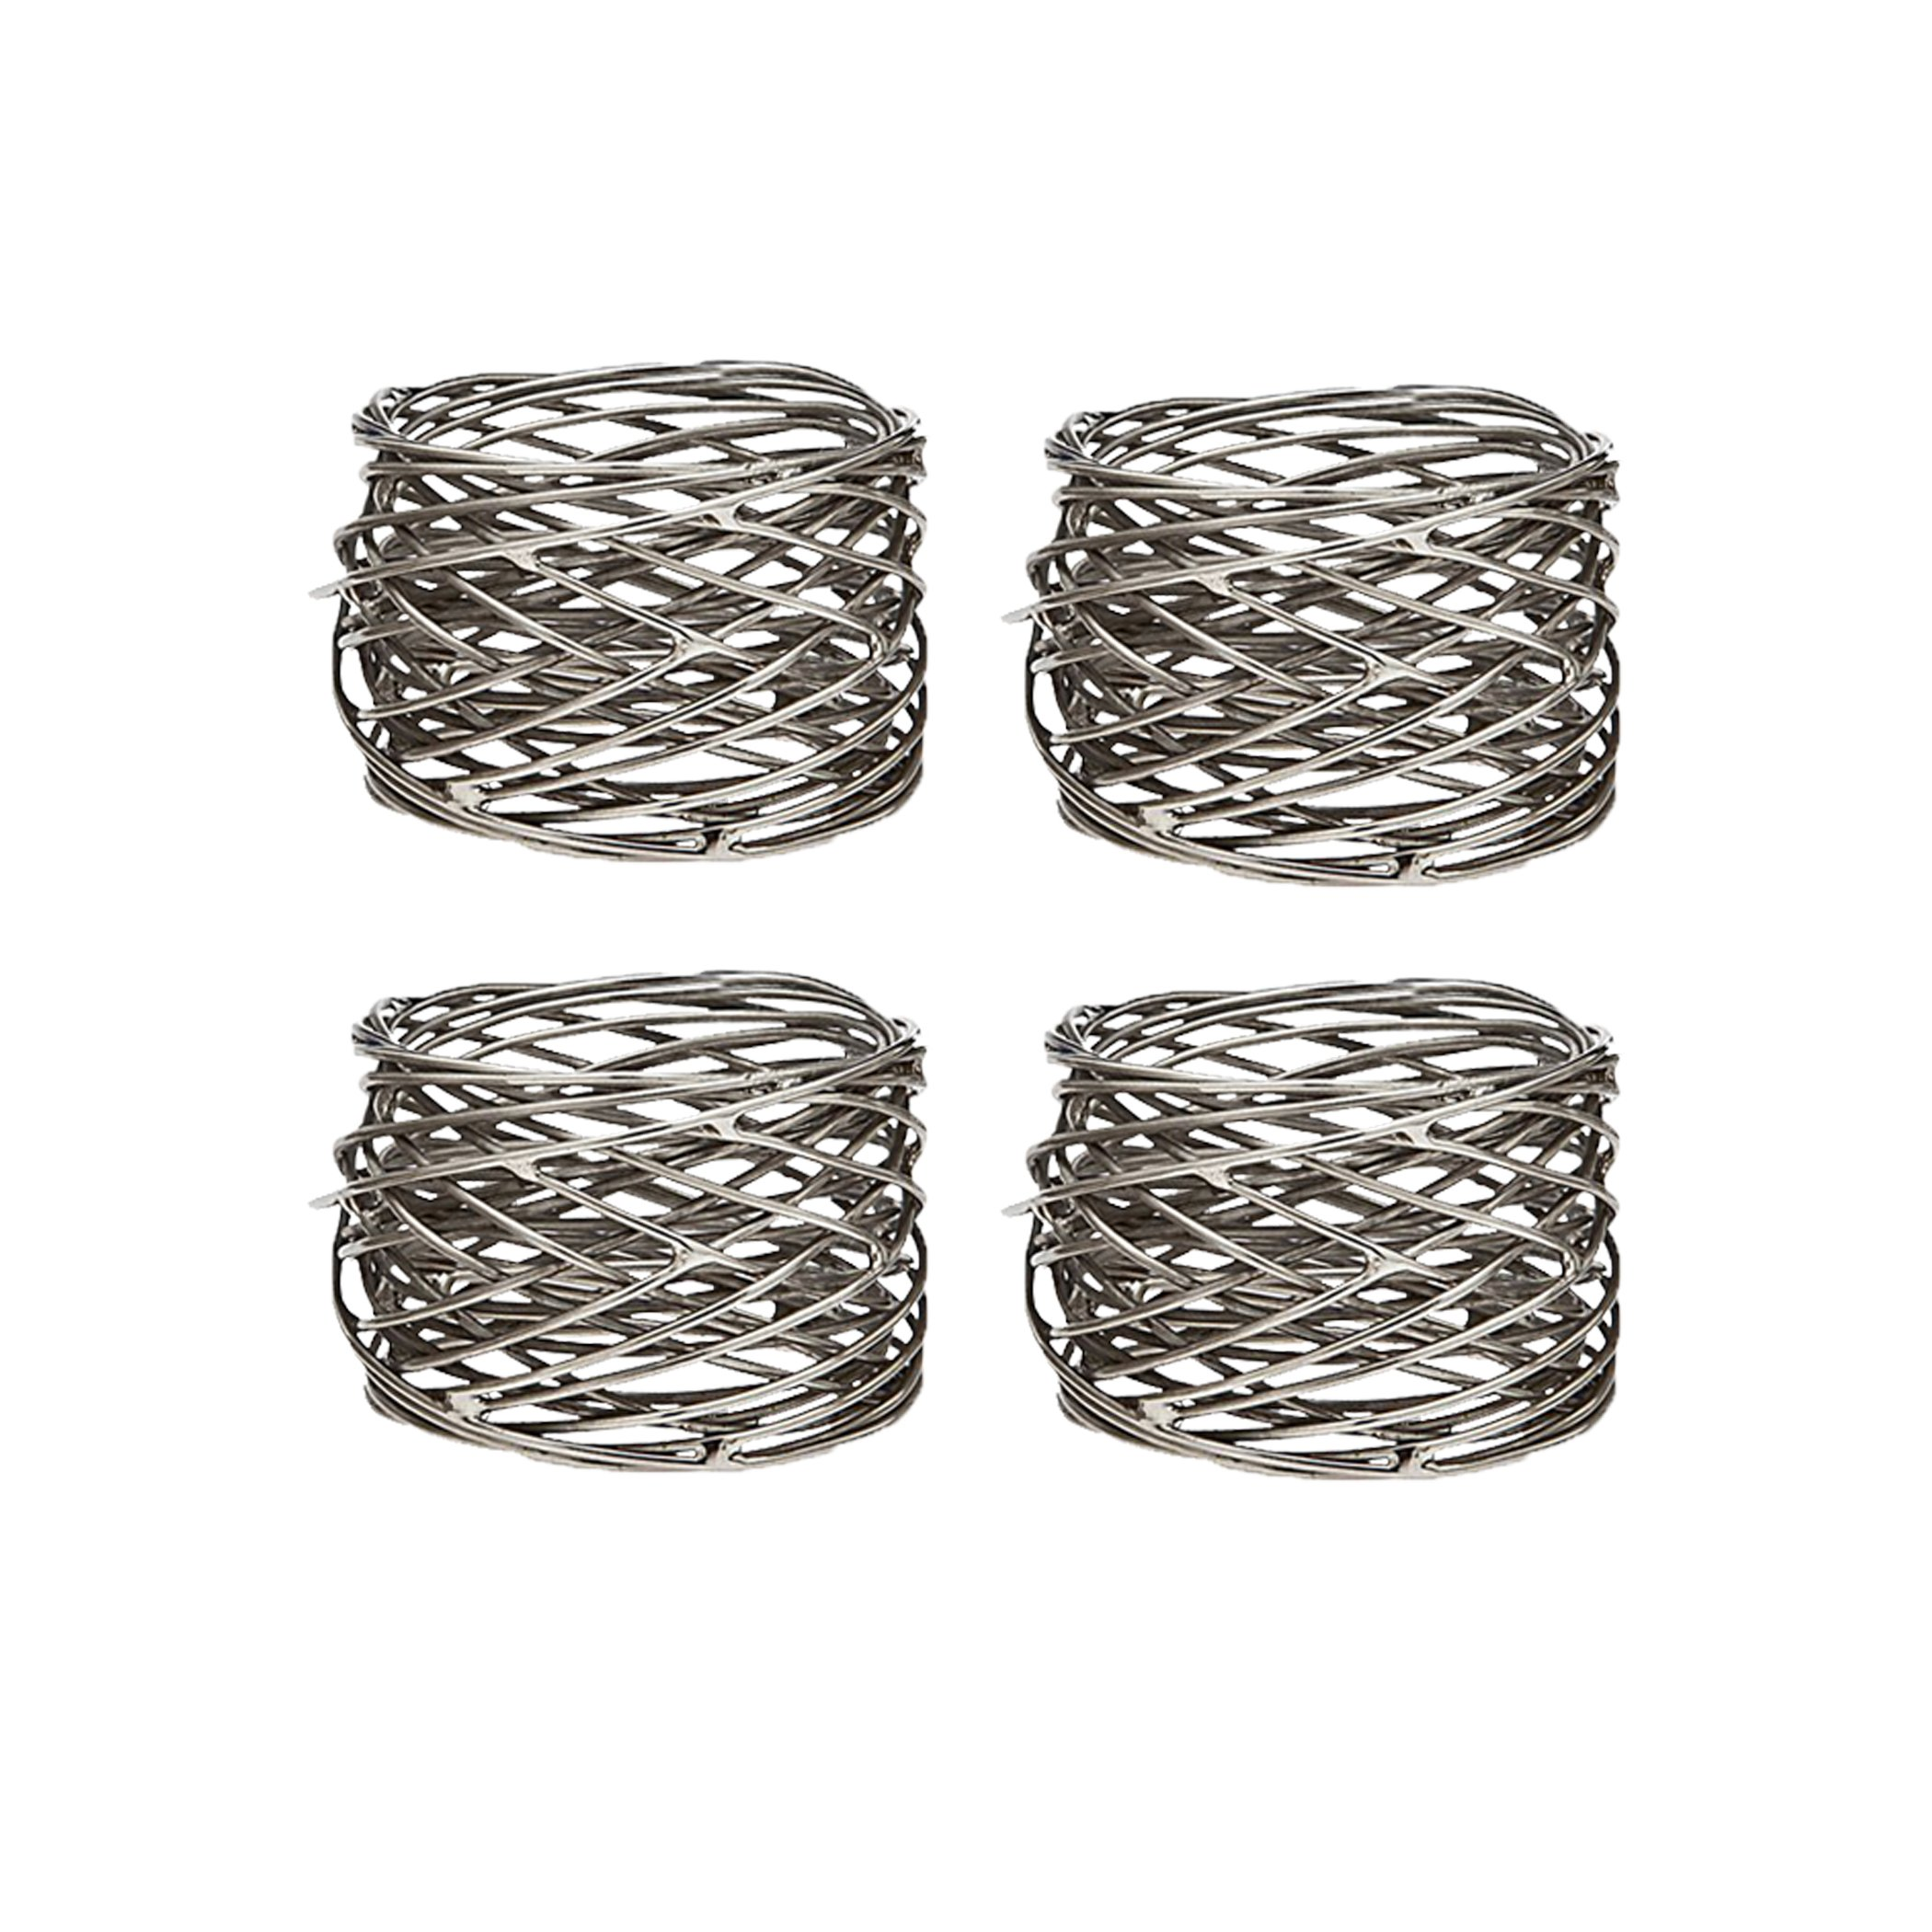 Klikel Mesh Napkin Ring Stainless Steel Set Of 4 by Klikel